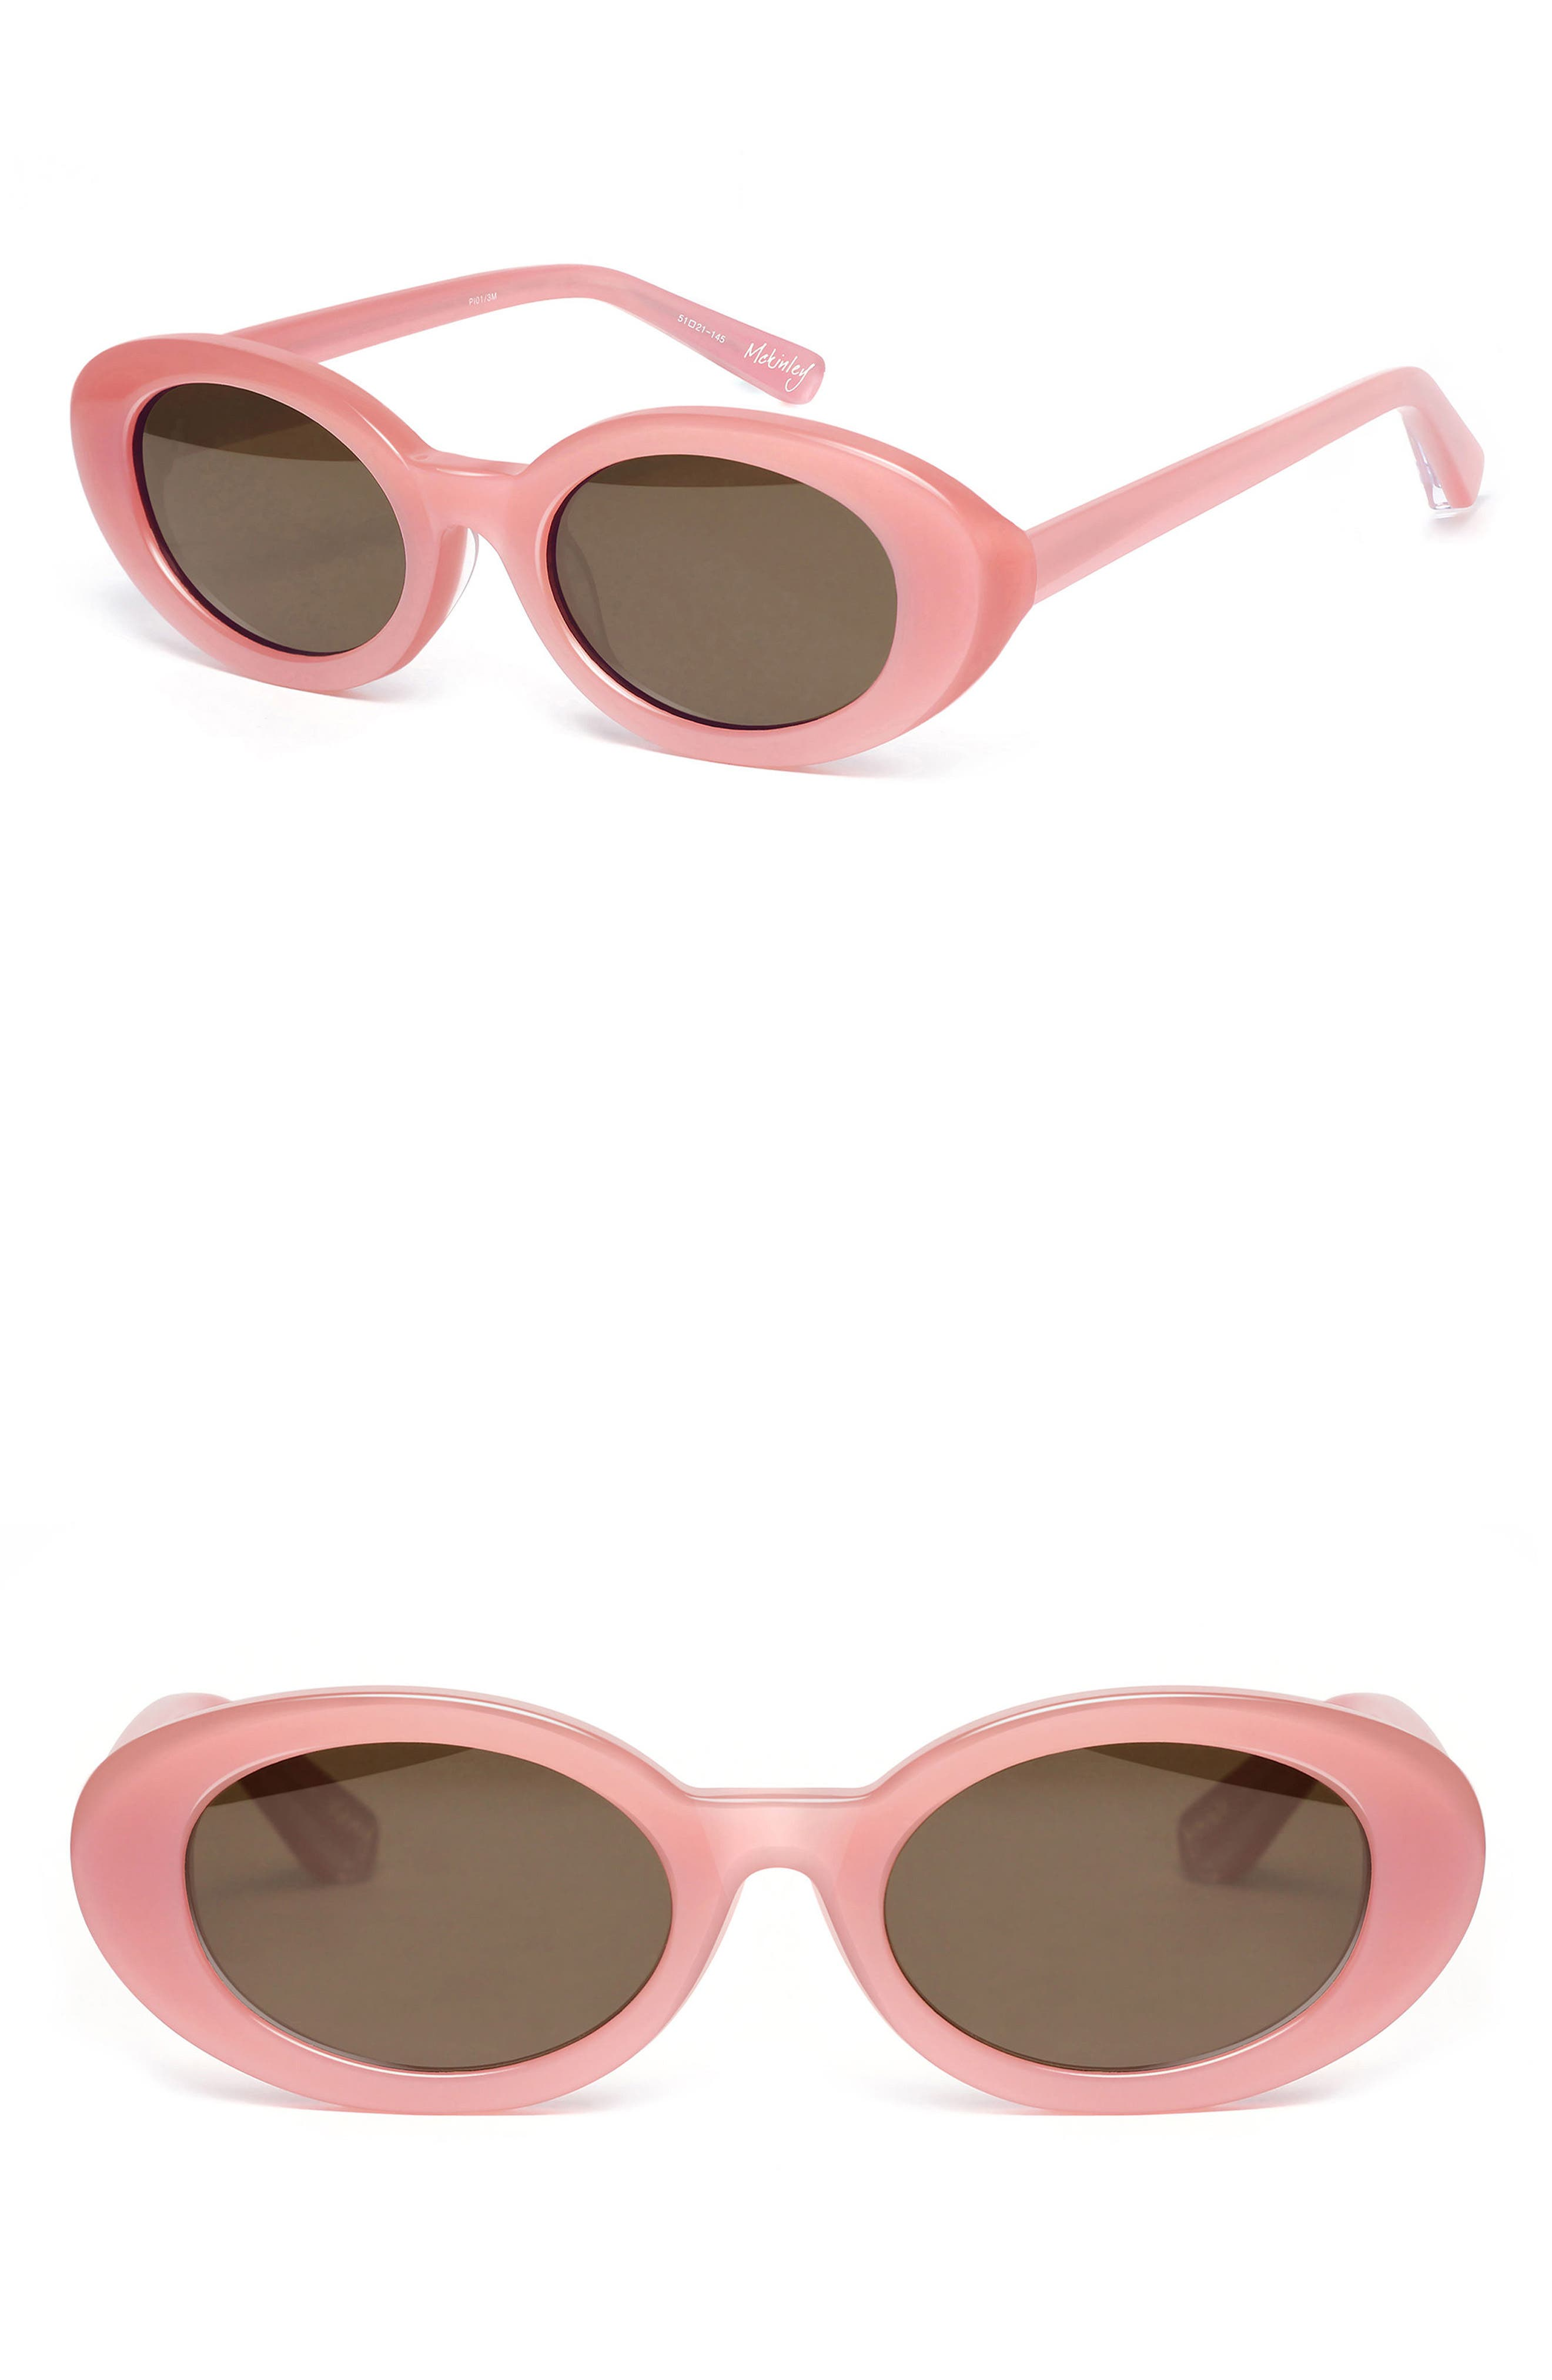 McKinely 51mm Oval Sunglasses,                         Main,                         color, BUBBLEGUM PINK/ BROWN